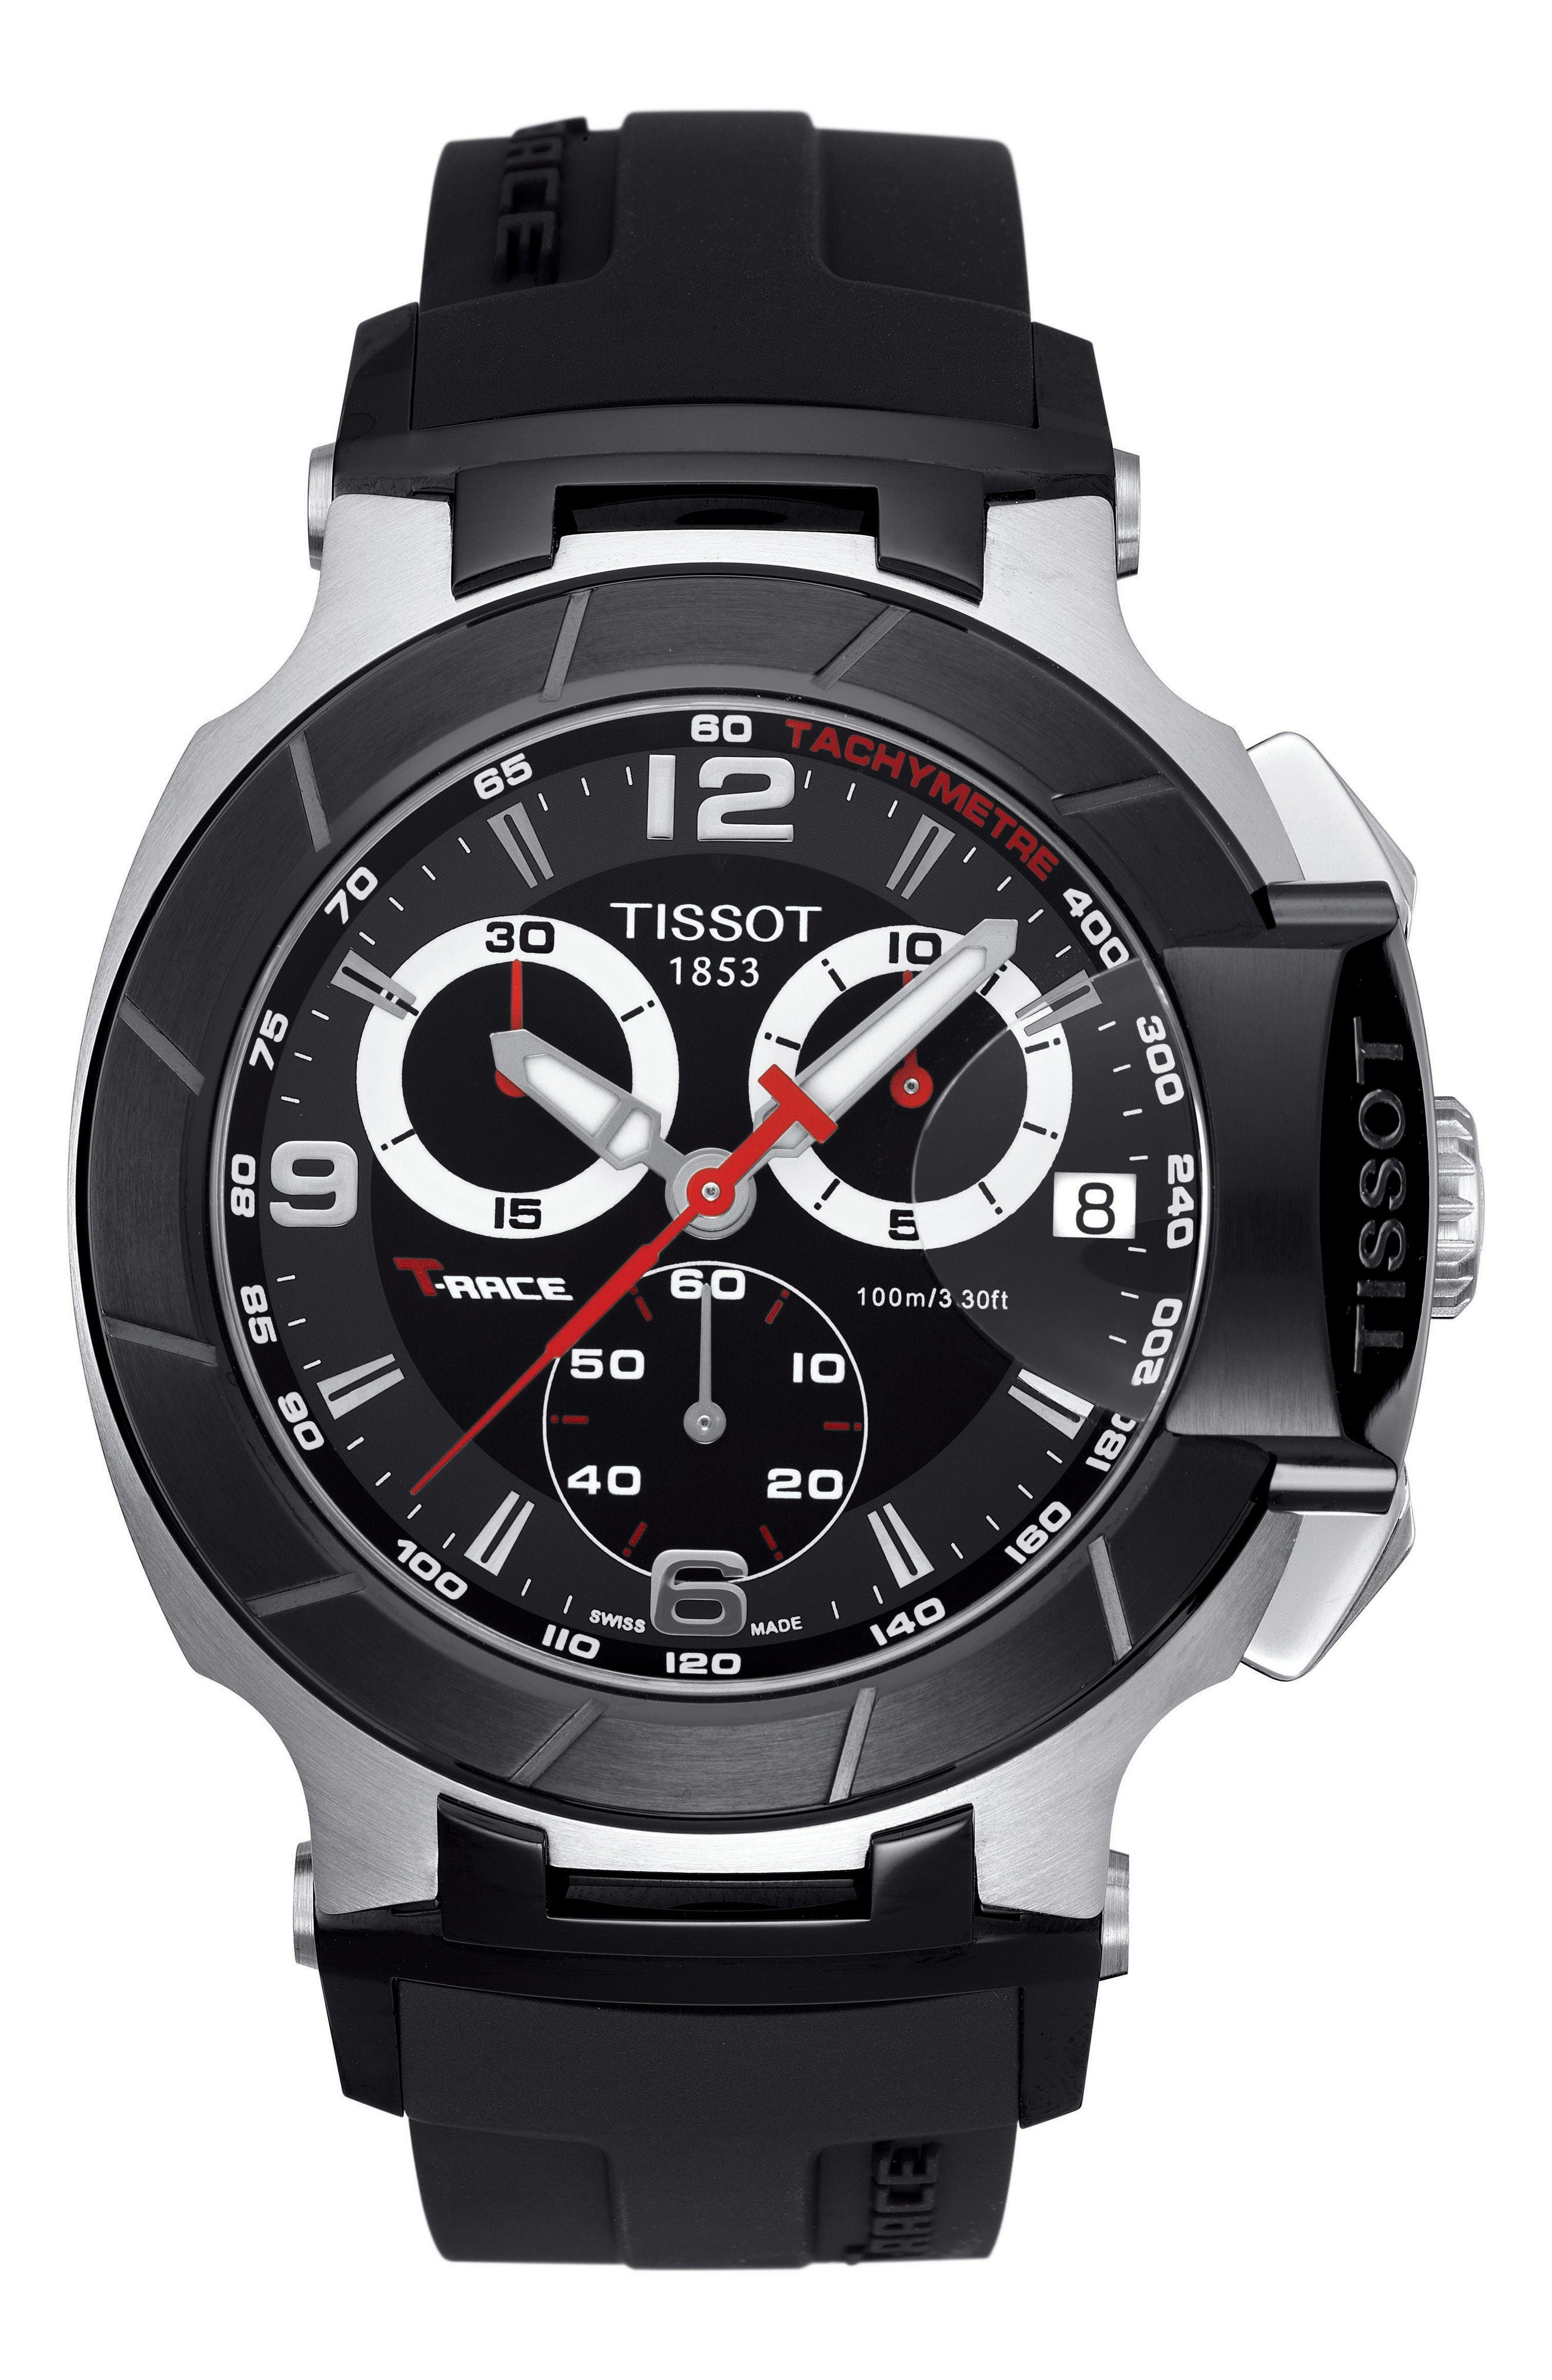 Tissot T-Race Chronograph Silicone Strap Watch, 50mm